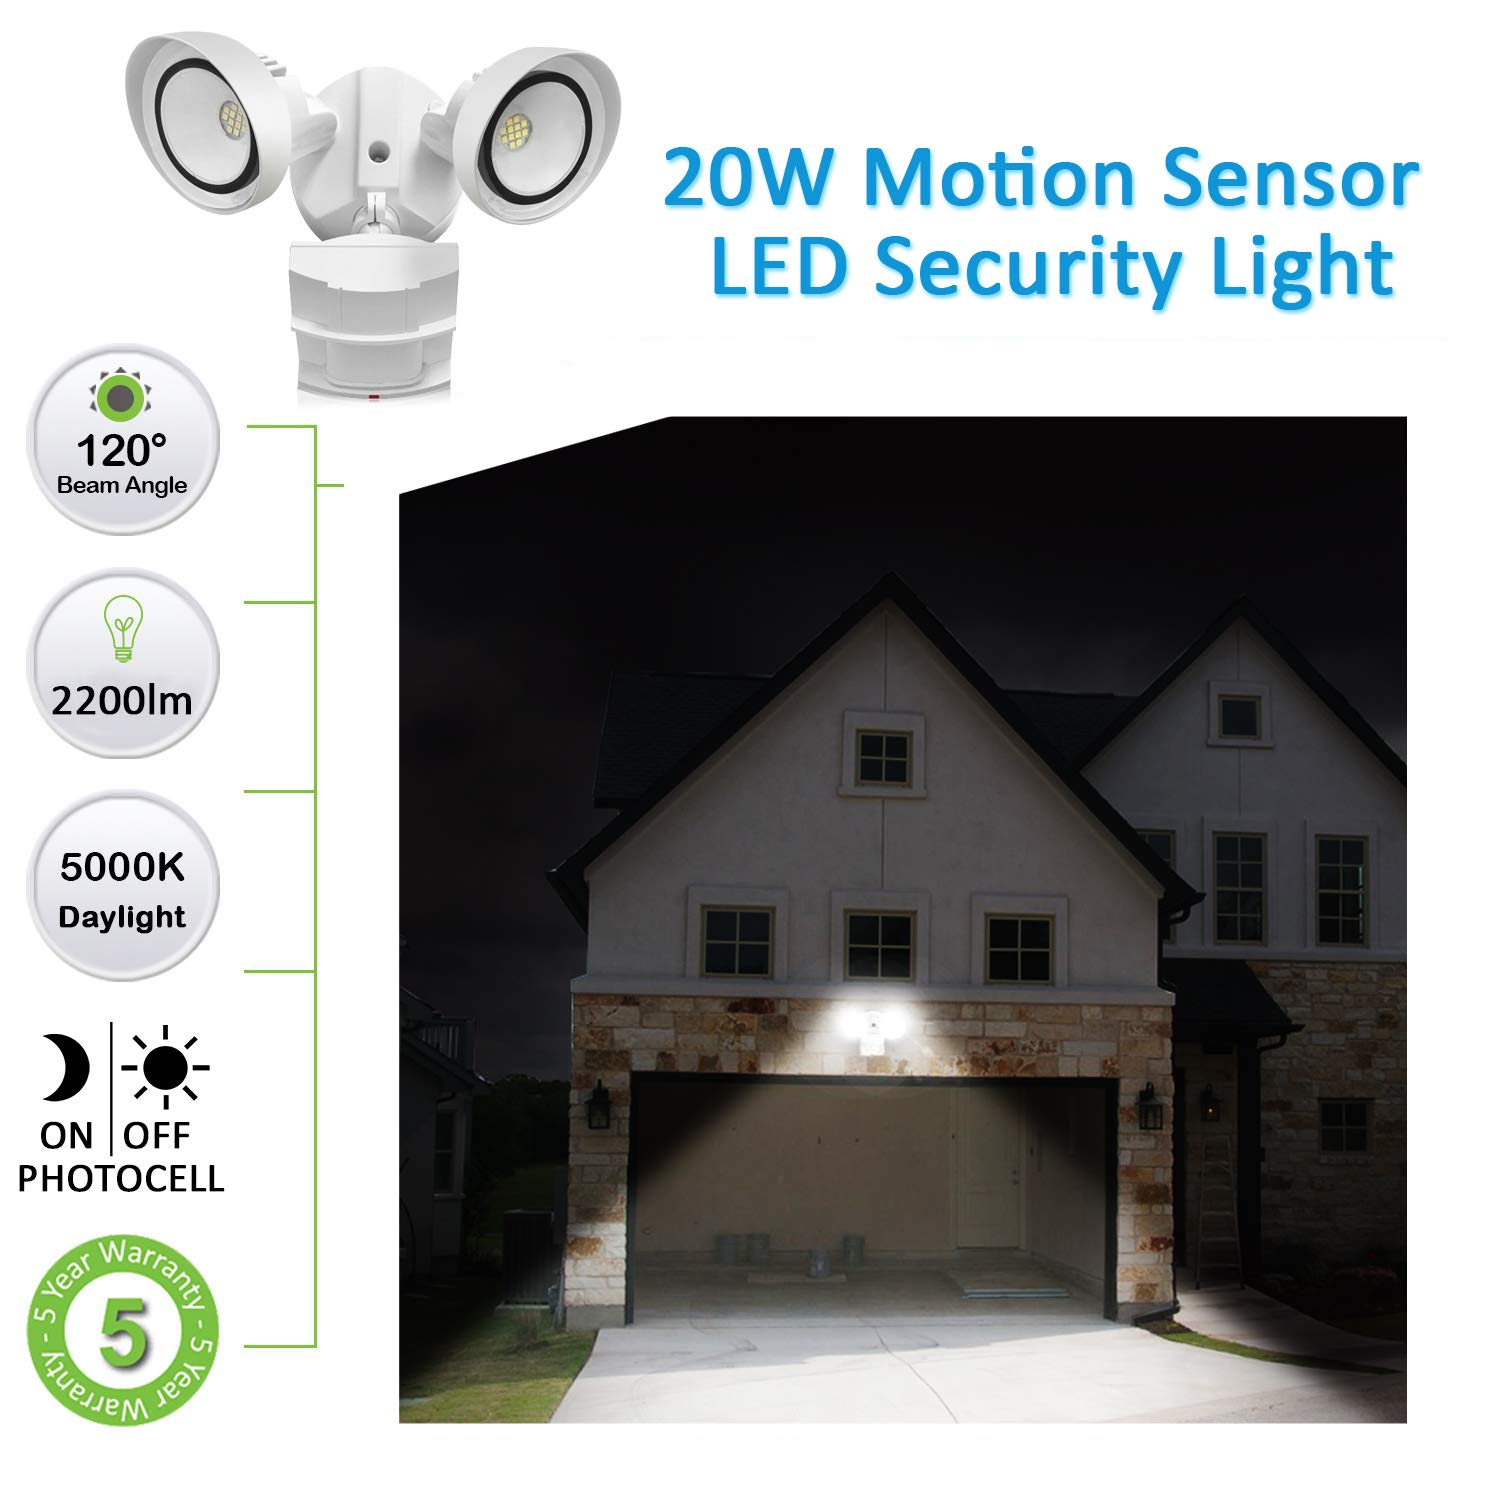 20W LED Securtiy Light Motion Sensor Outdoor,LEDMEI CREE LED 5000K Daylight 2200LM 250W Equivalent IP65 Waterproof Outdoor Motion Sensor Adjustable Flood Light for Entryway Stairs Yard Garage